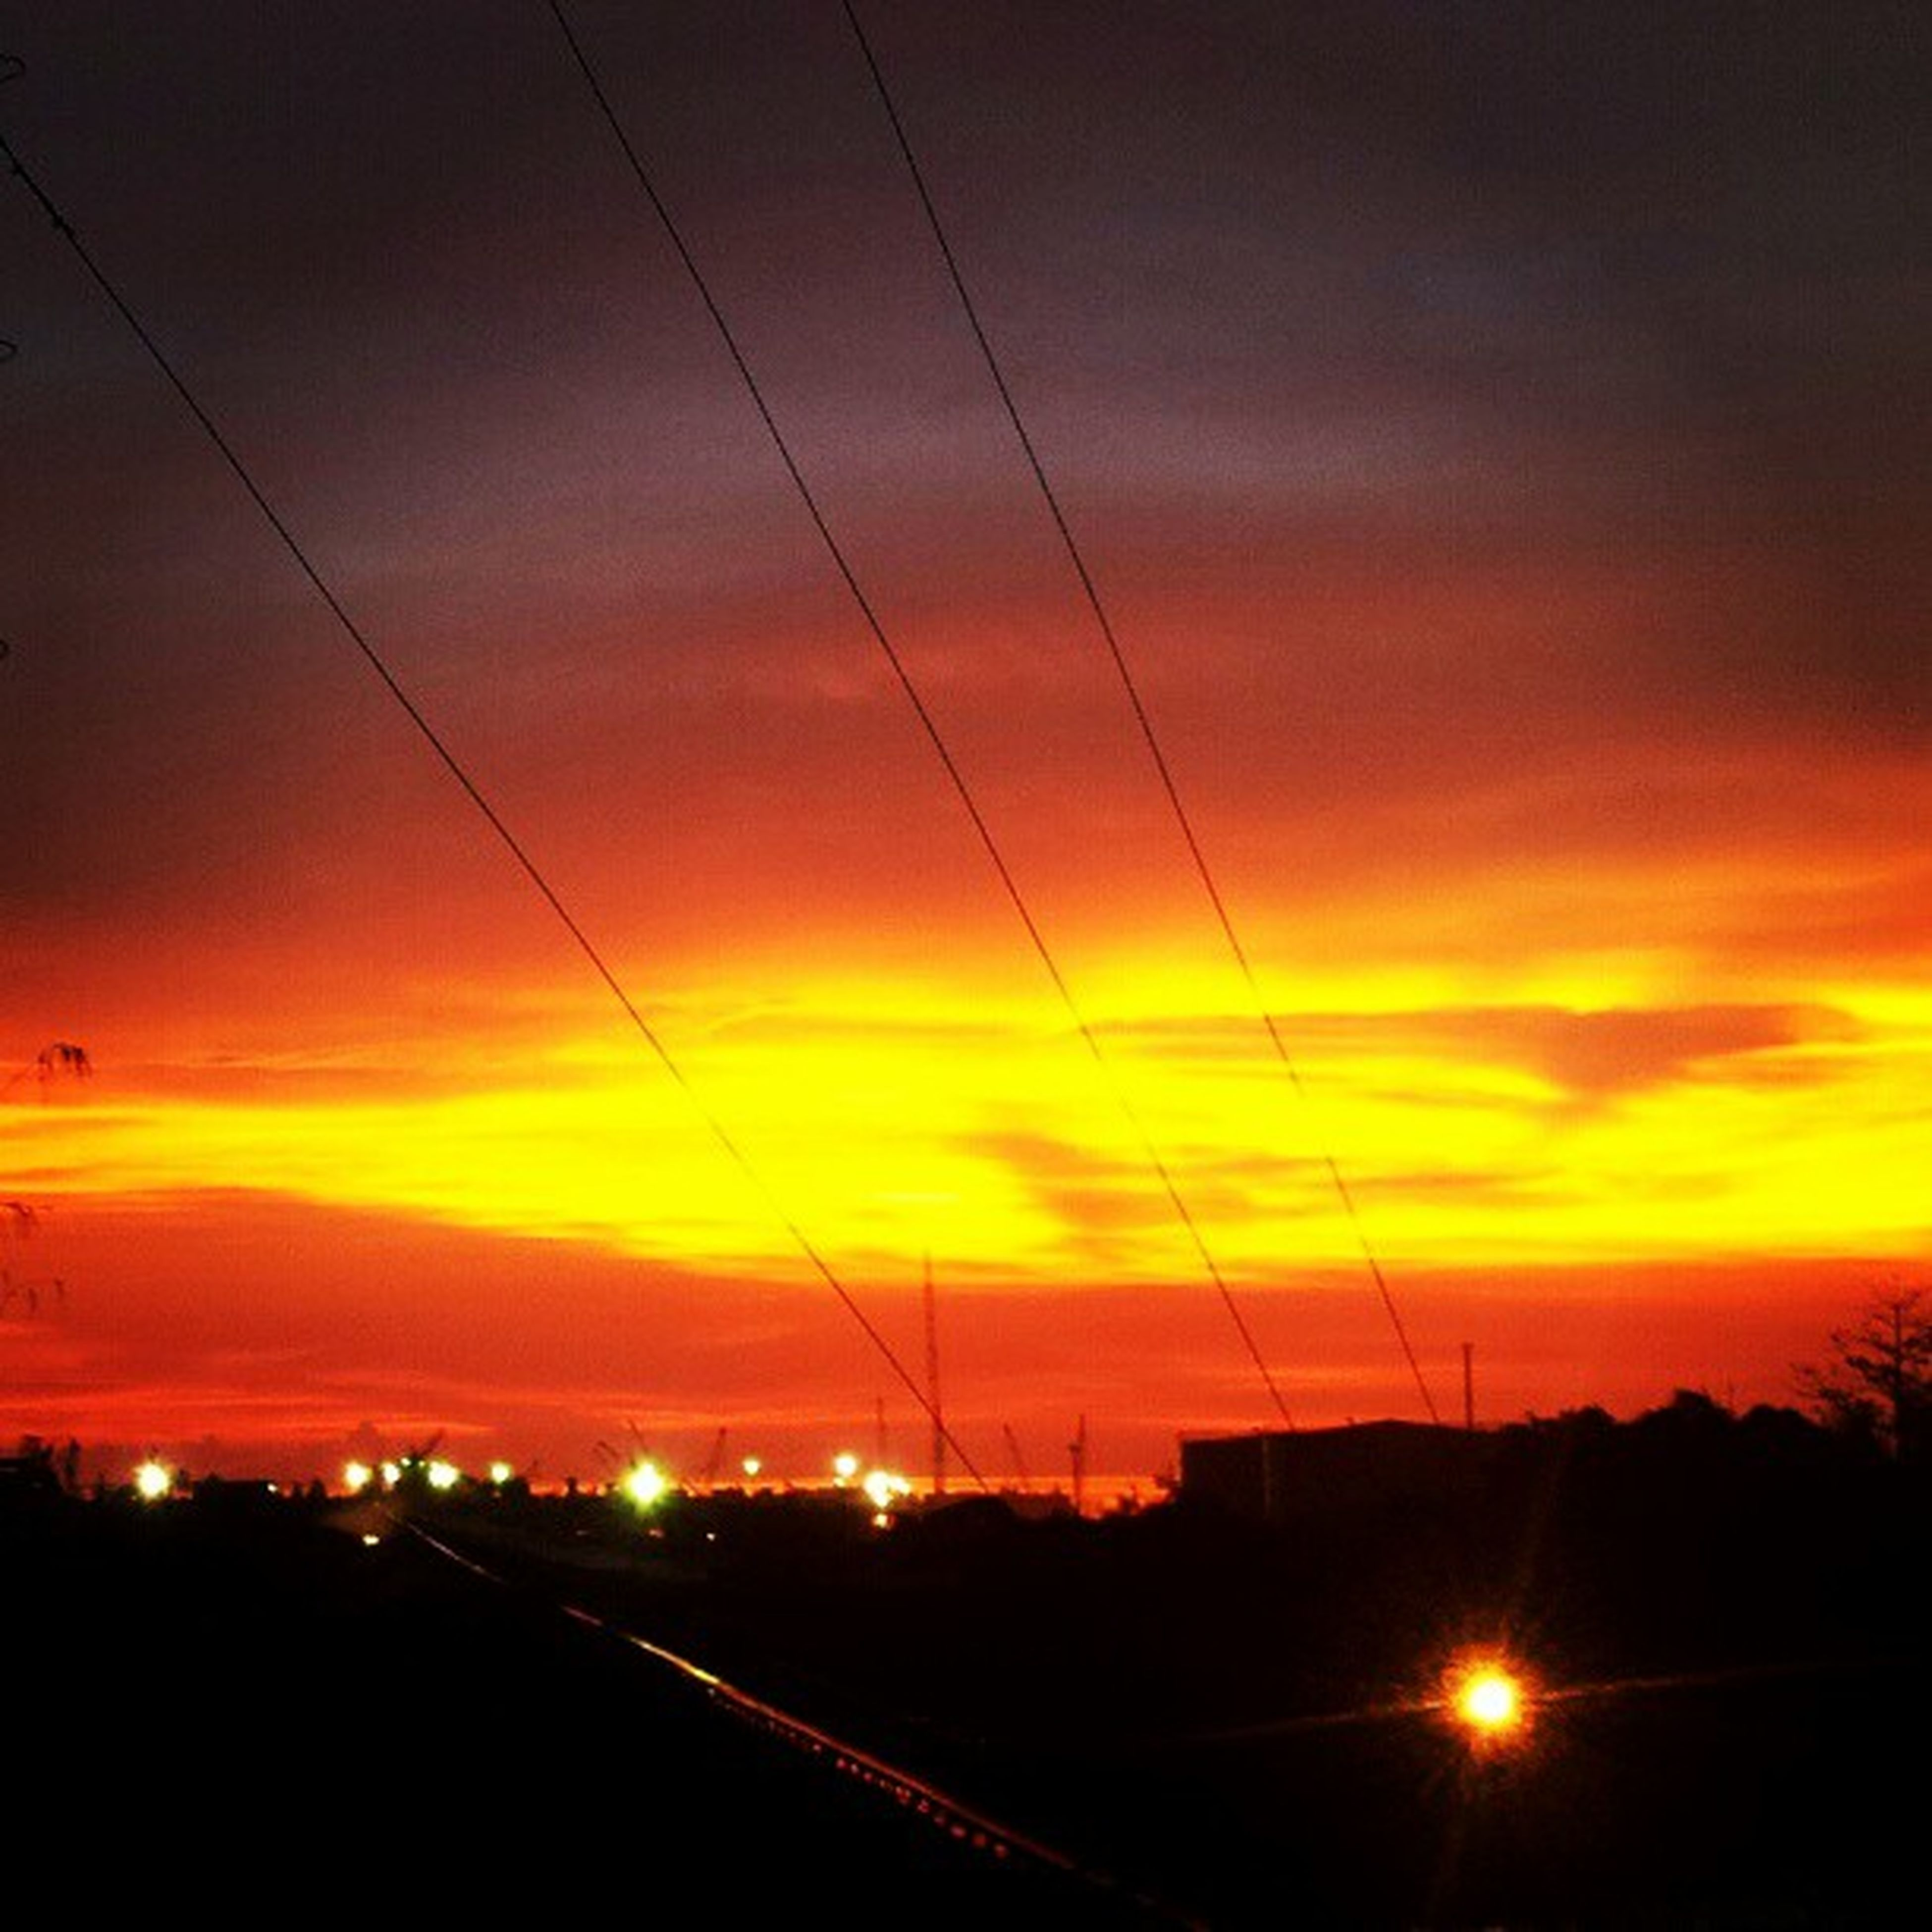 sunset, orange color, sky, power line, cloud - sky, silhouette, electricity pylon, connection, electricity, cable, scenics, beauty in nature, dramatic sky, nature, power supply, tranquility, built structure, idyllic, tranquil scene, landscape